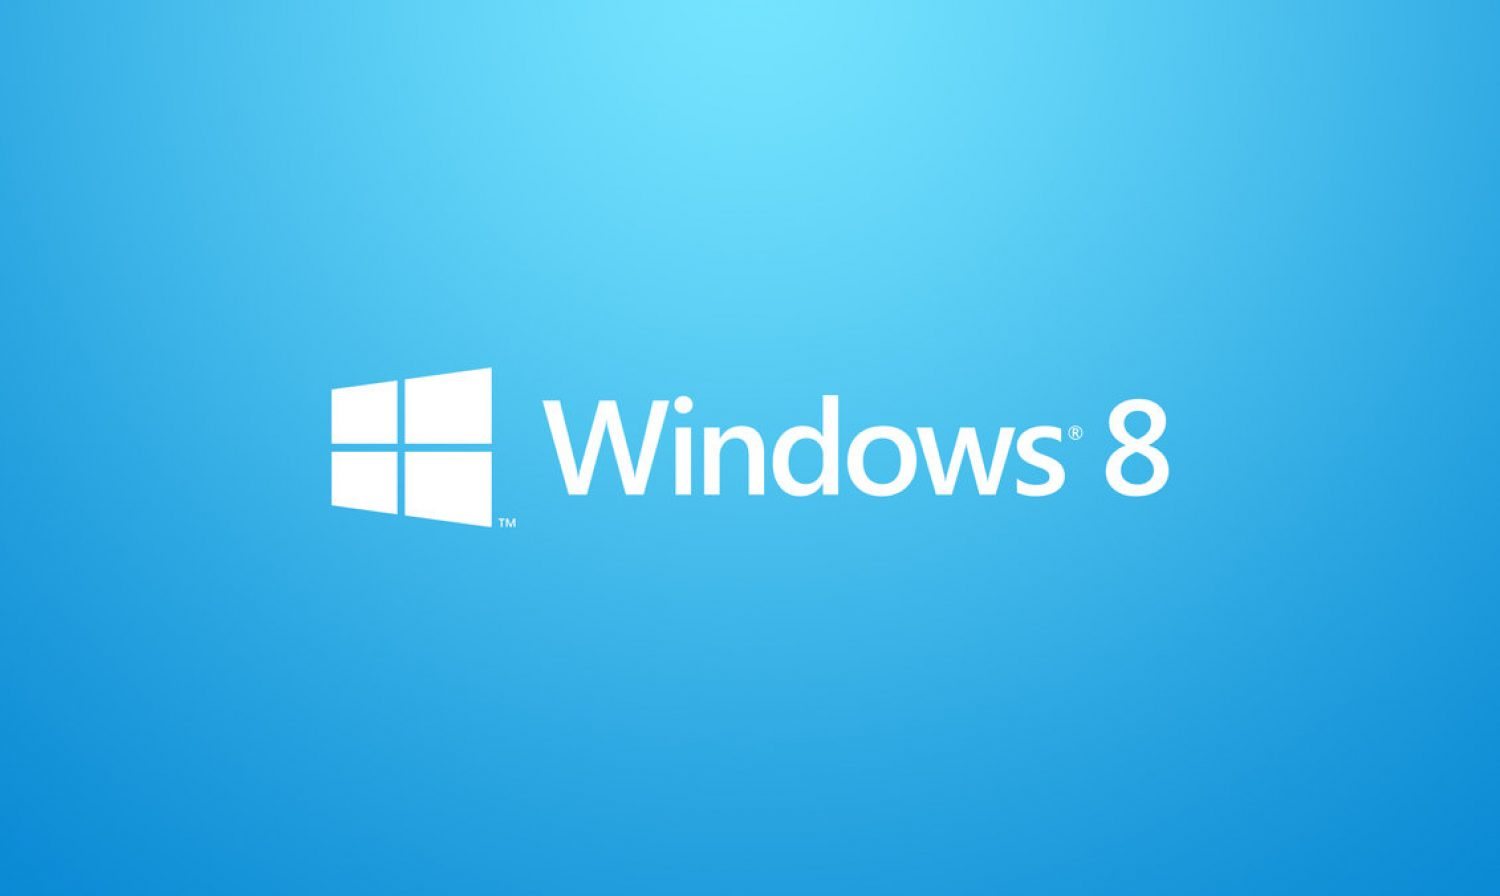 Comment telecharger windows 8 gratuit ?